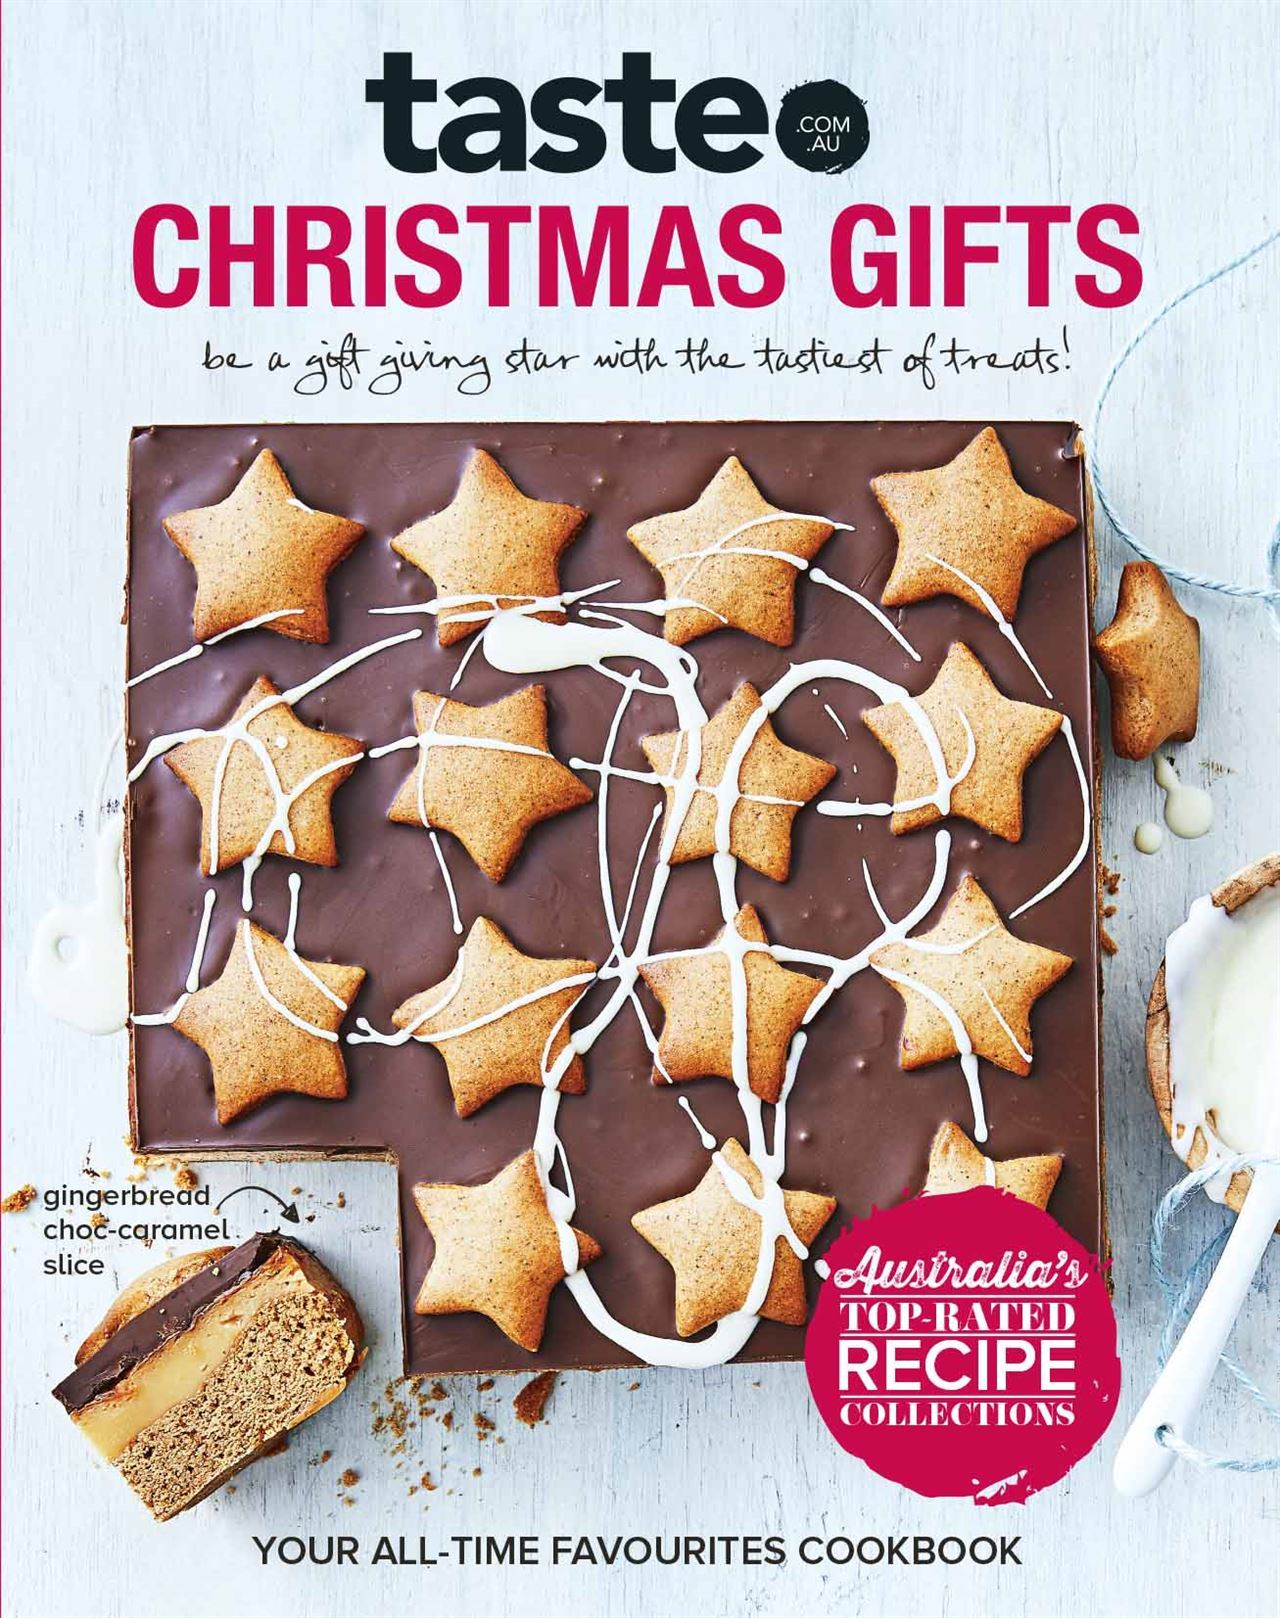 Taste.com.au Christmas Gifts Cookbook 2019